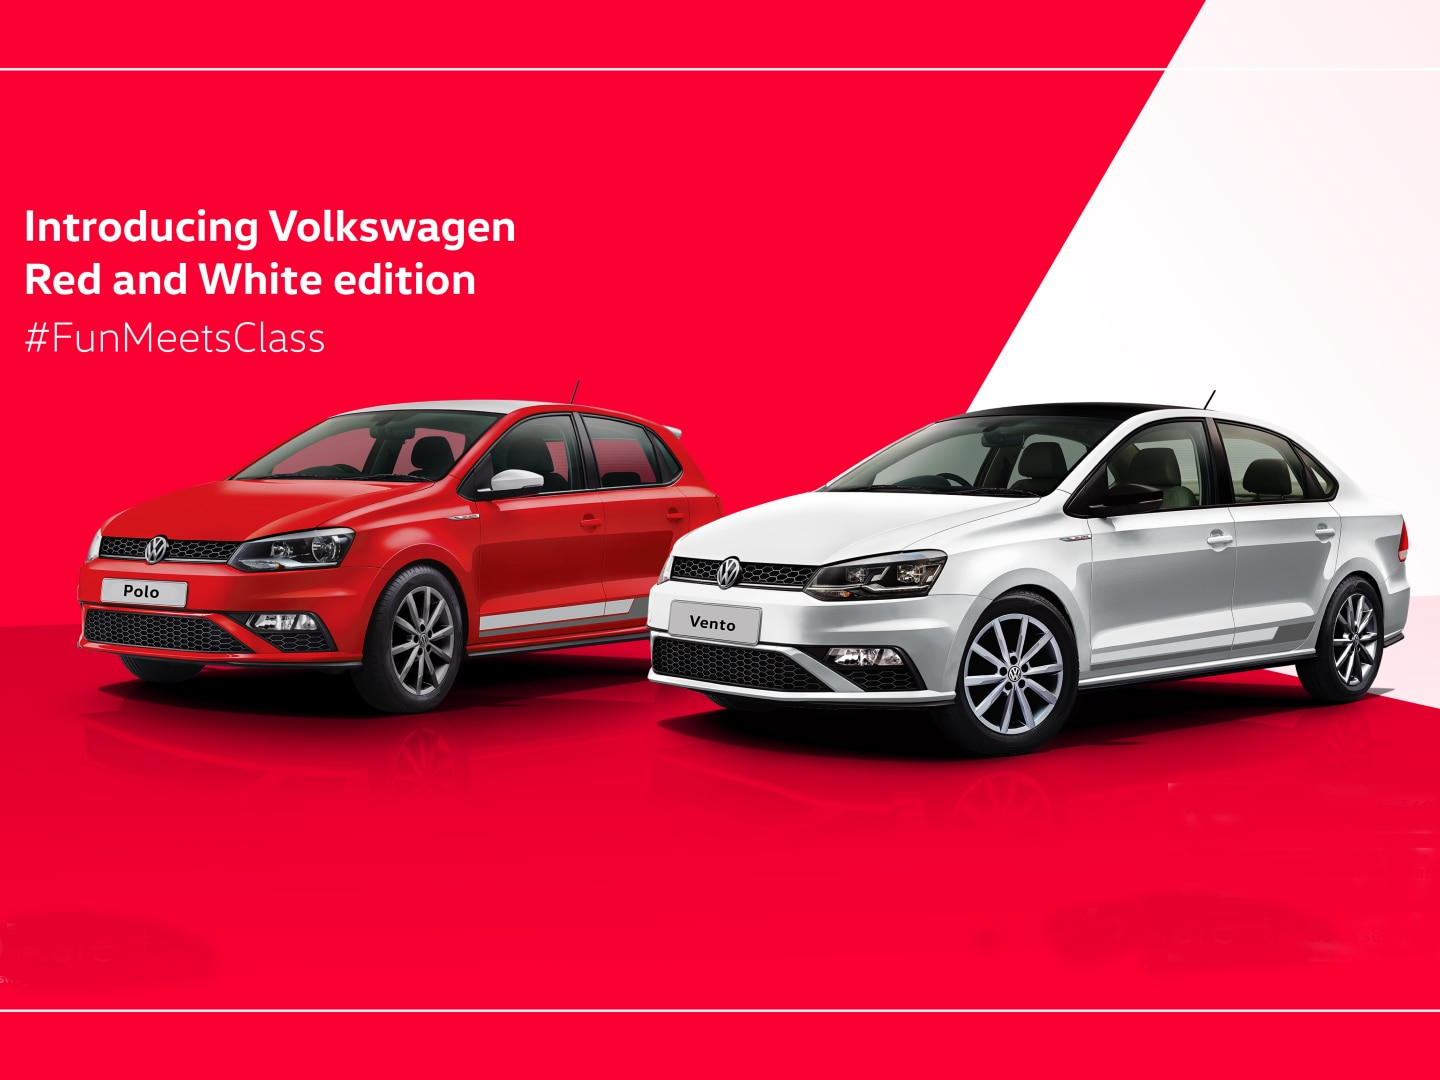 Volkswagen Polo Vento Red And White Editions Launched In India At Rs 9 19 Lakh And Rs 11 49 Lakh Respectively Zigwheels